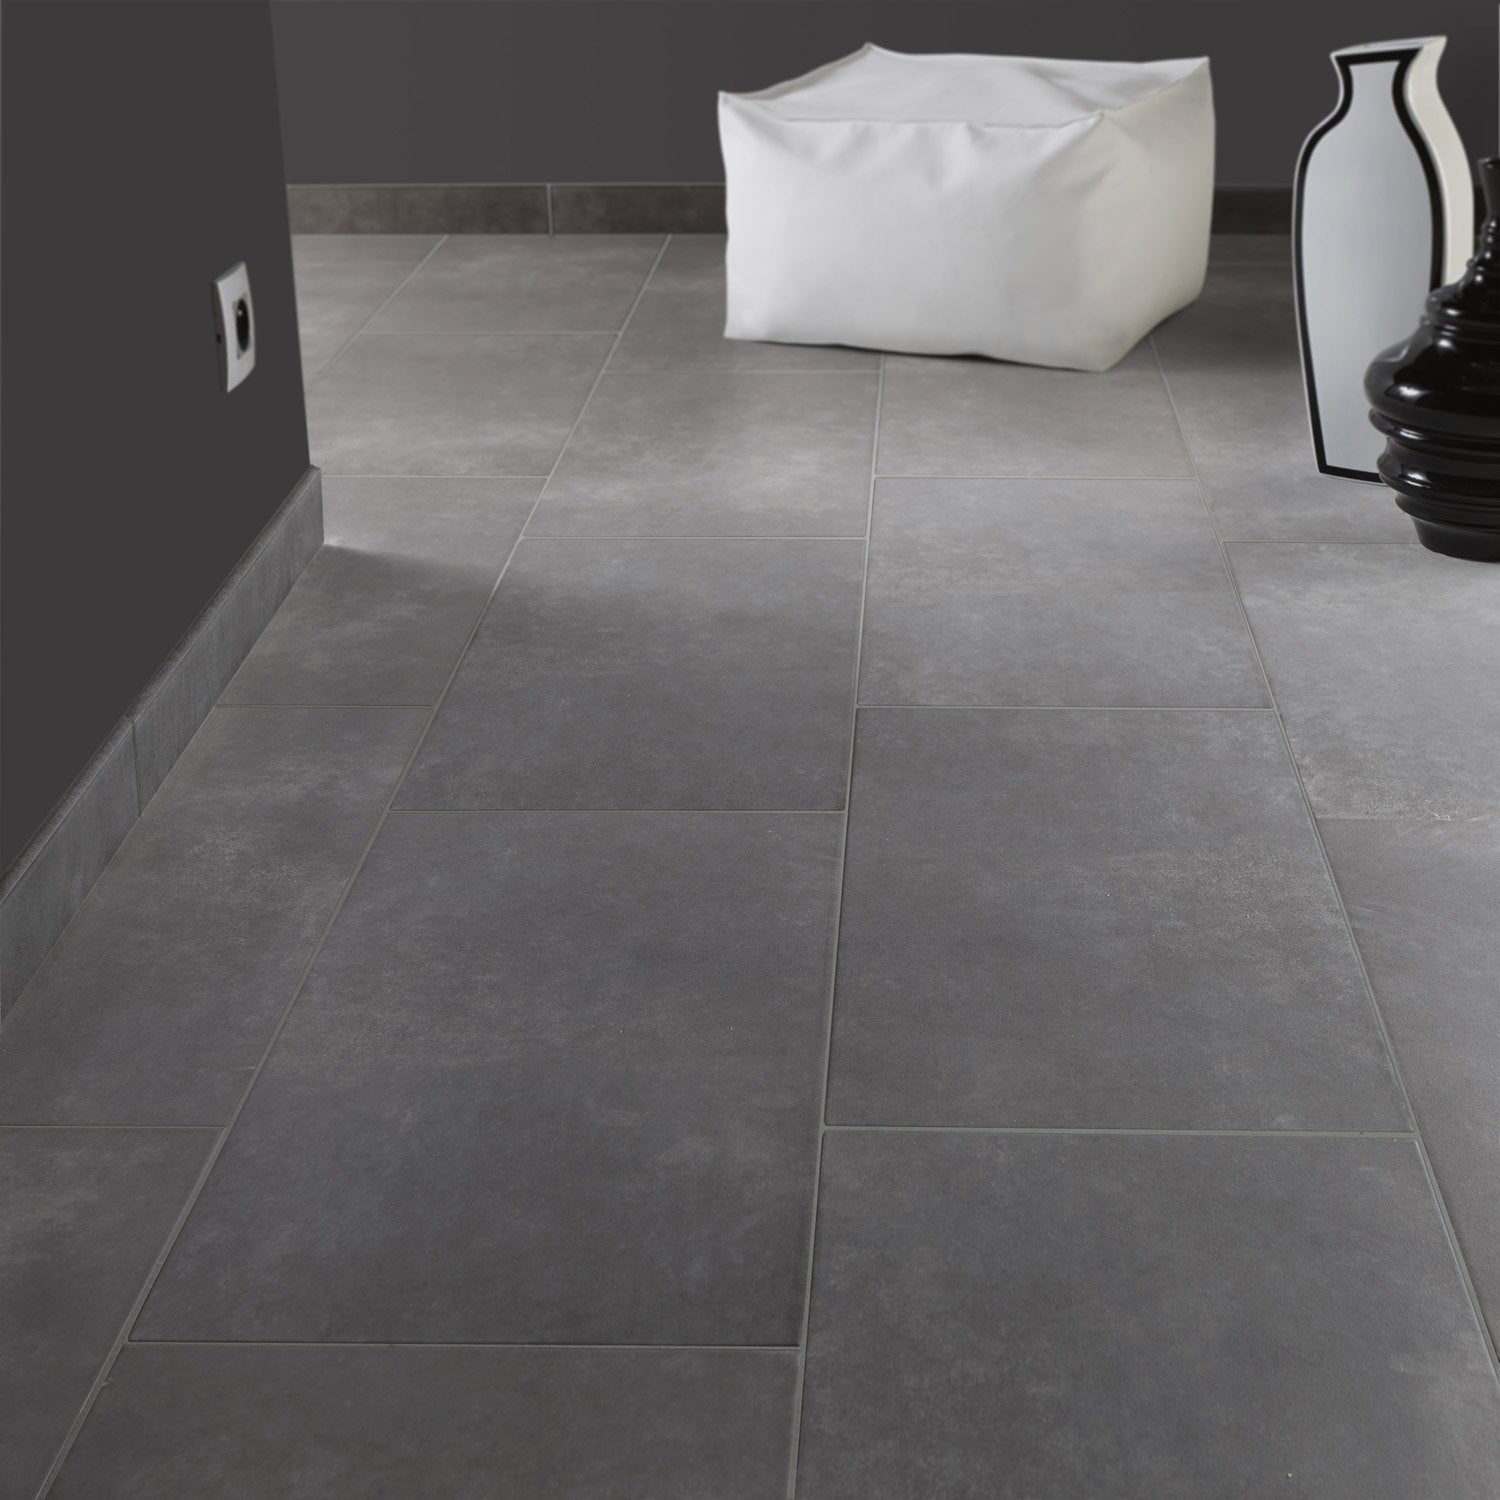 Carrelage sol et mur anthracite effet b ton soho x for Carrelage gris anthracite